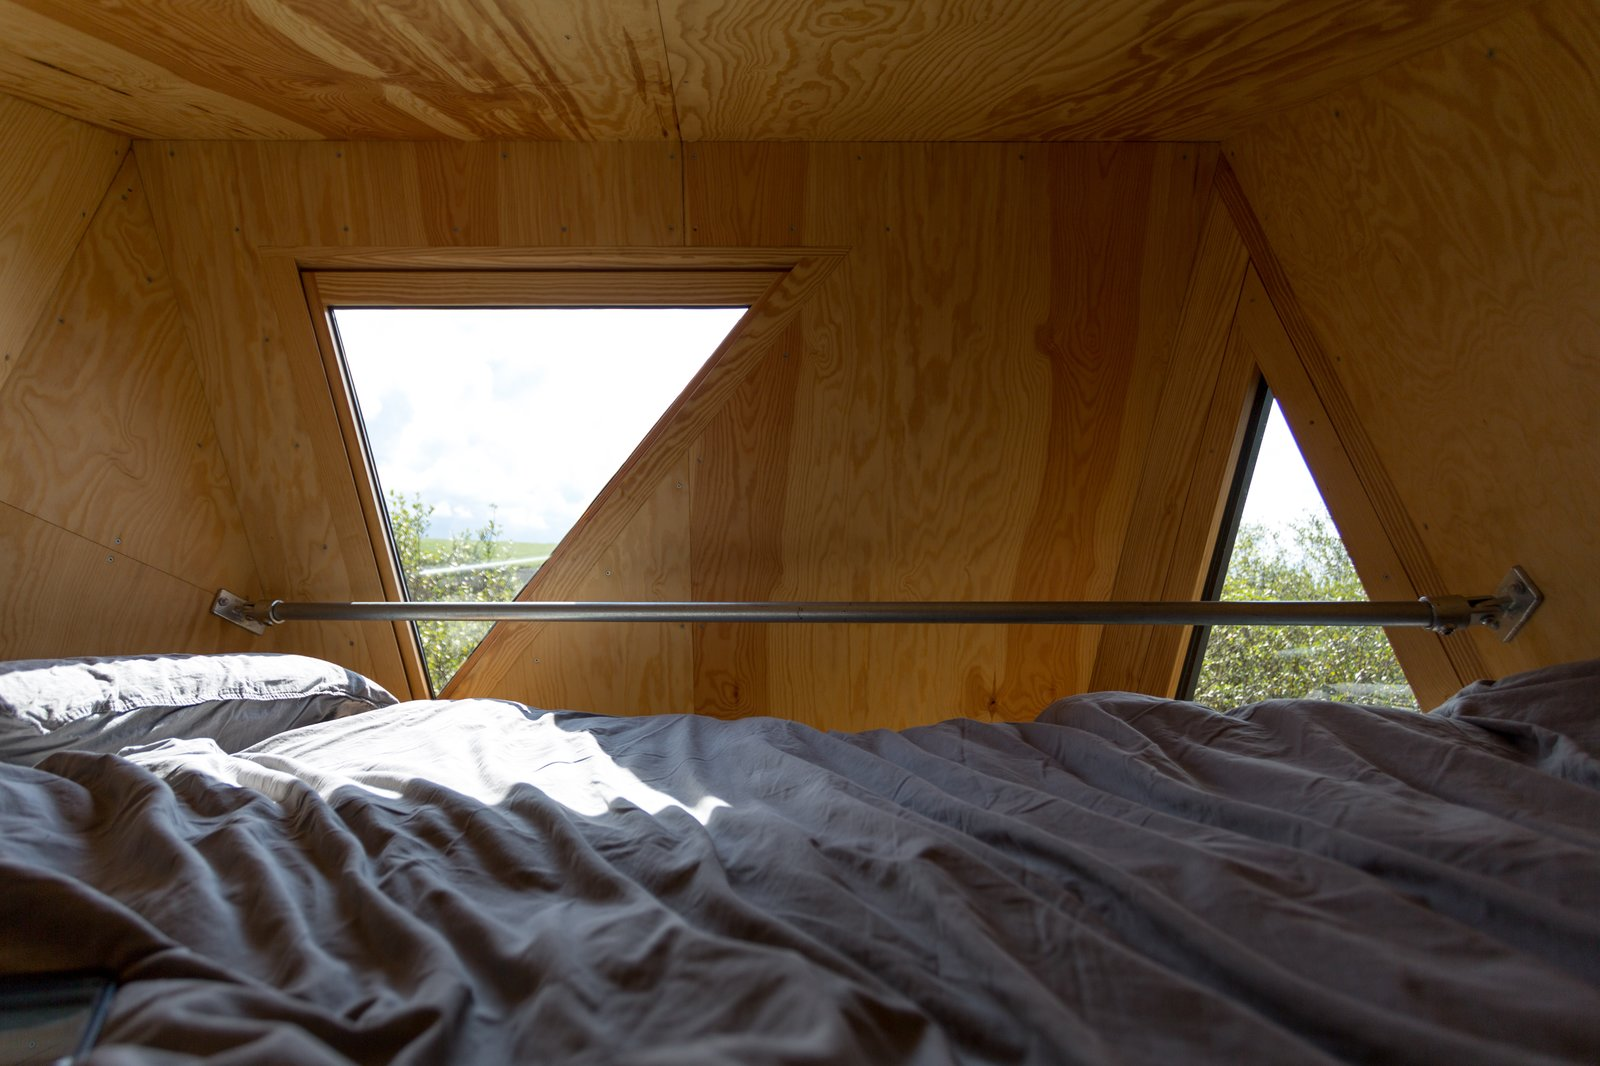 Bedroom and Bed Small triangular windows allow for views of the Cornish countryside.  Photo 8 of 12 in Go Off The Grid With These Remote Rental Cabins in Cornwall